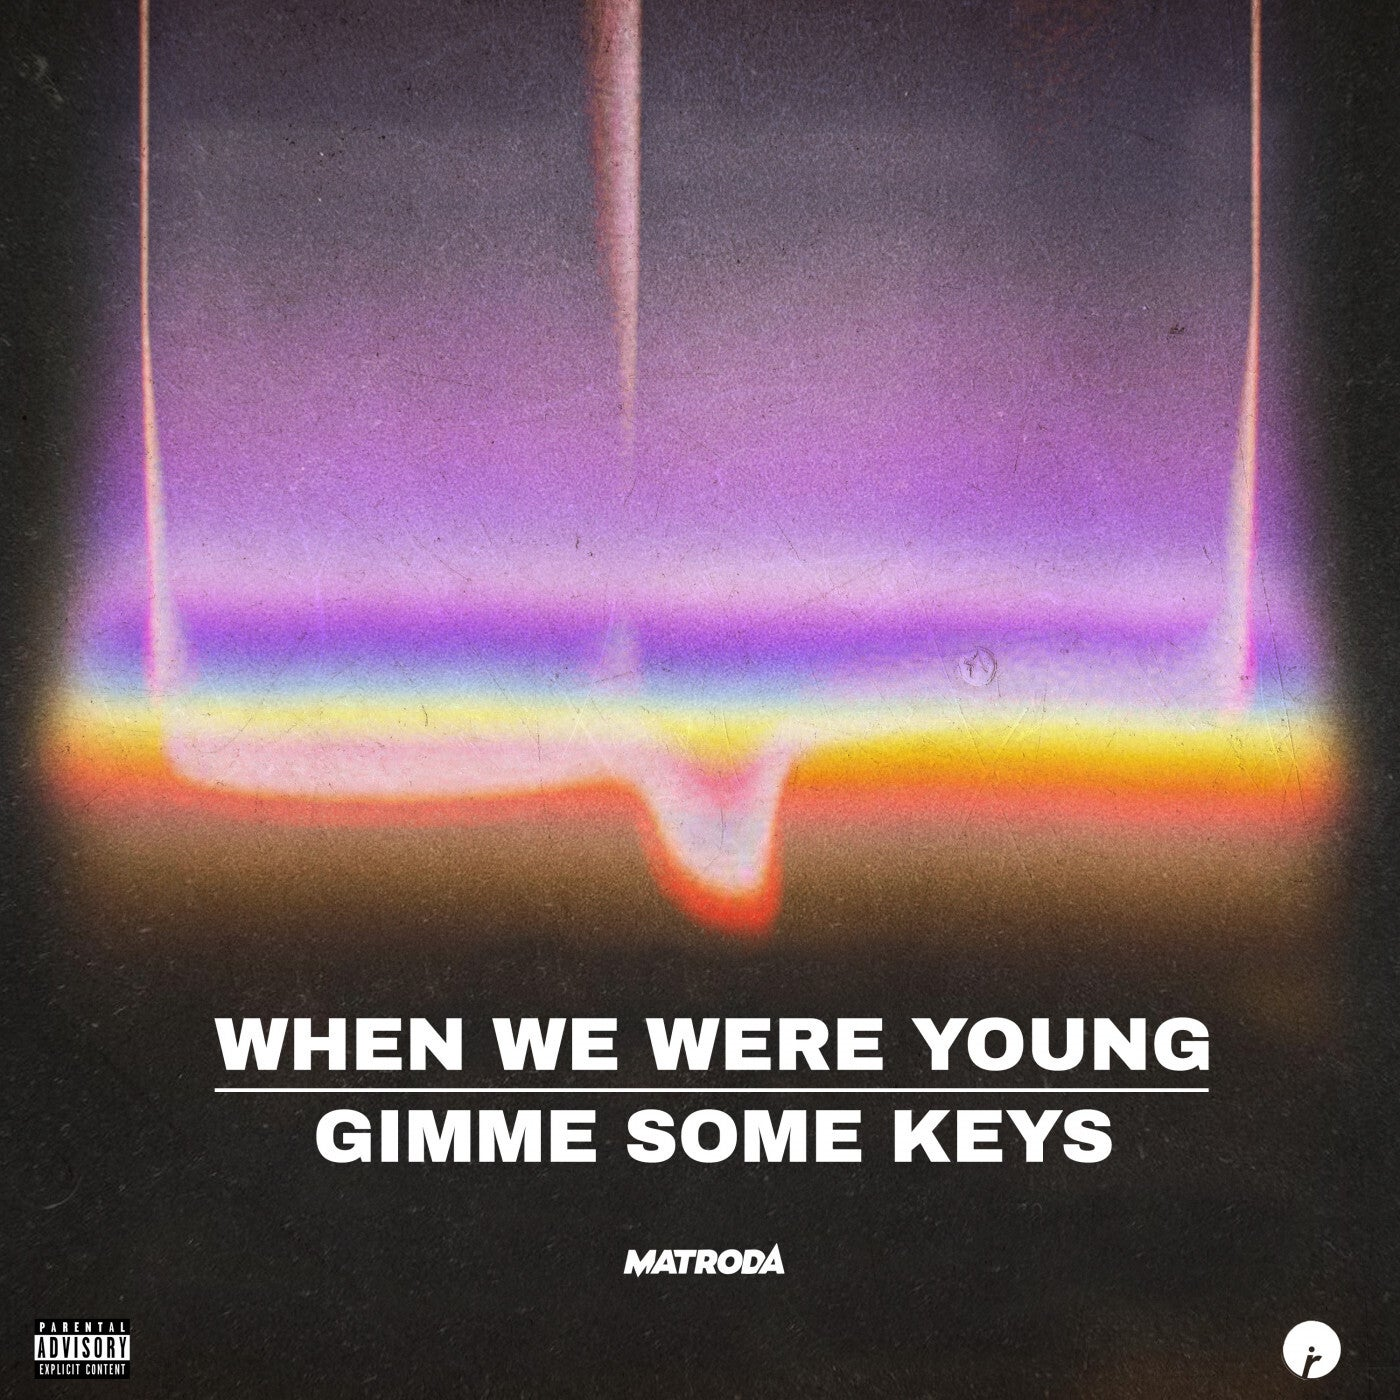 When We Were Young (Original Mix)